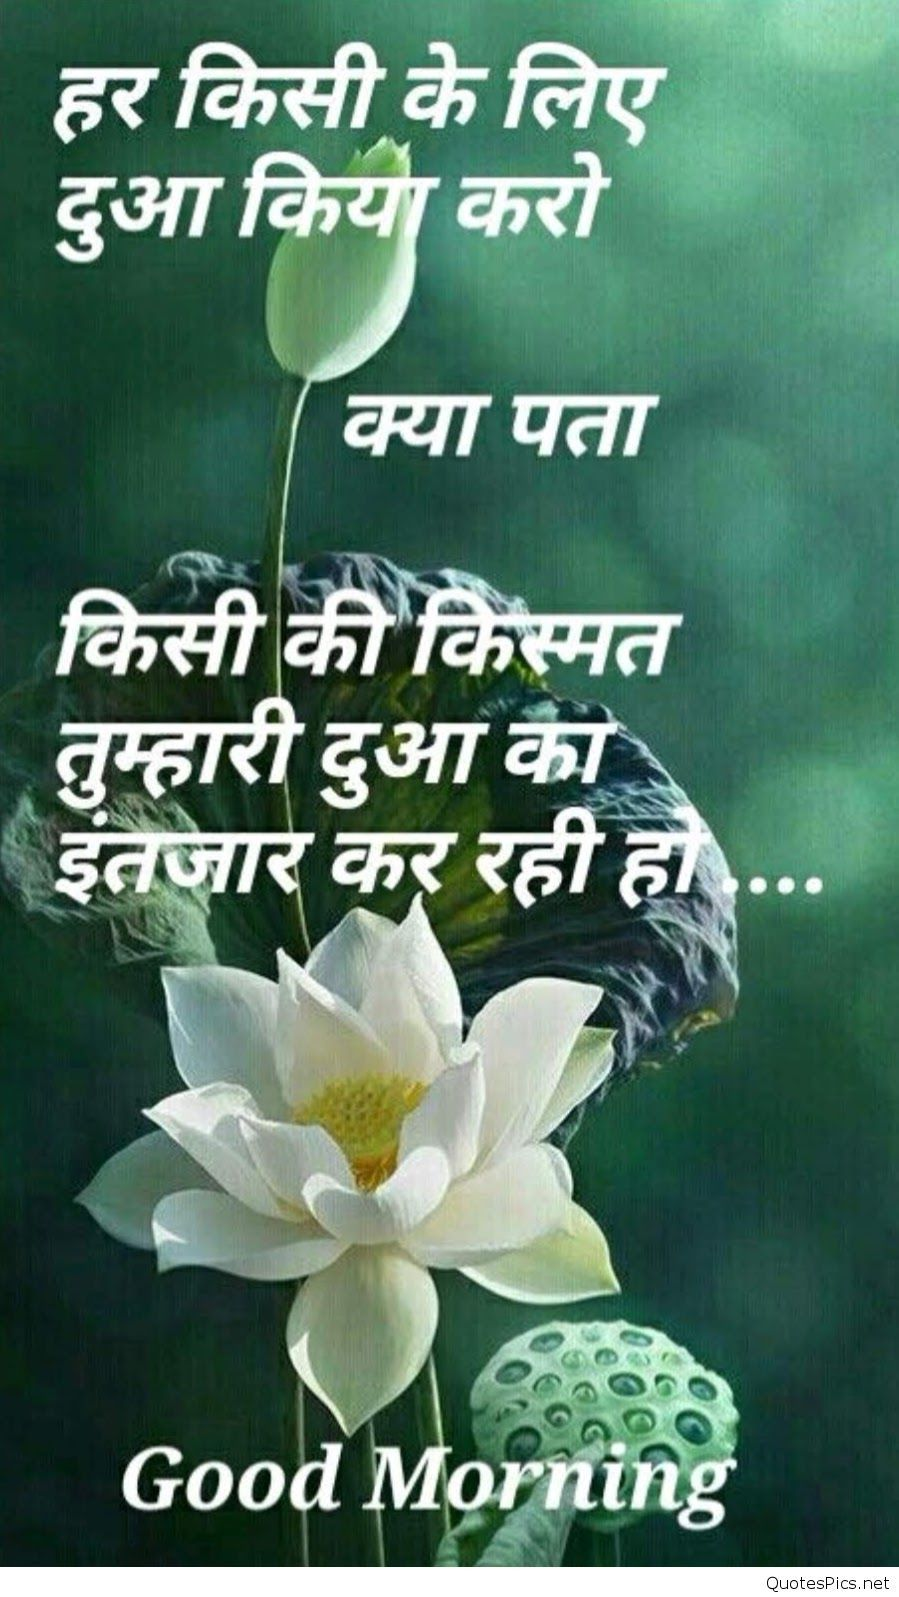 Good Evening Motivational Quotes In Hindi With 30 Morning Dil Se